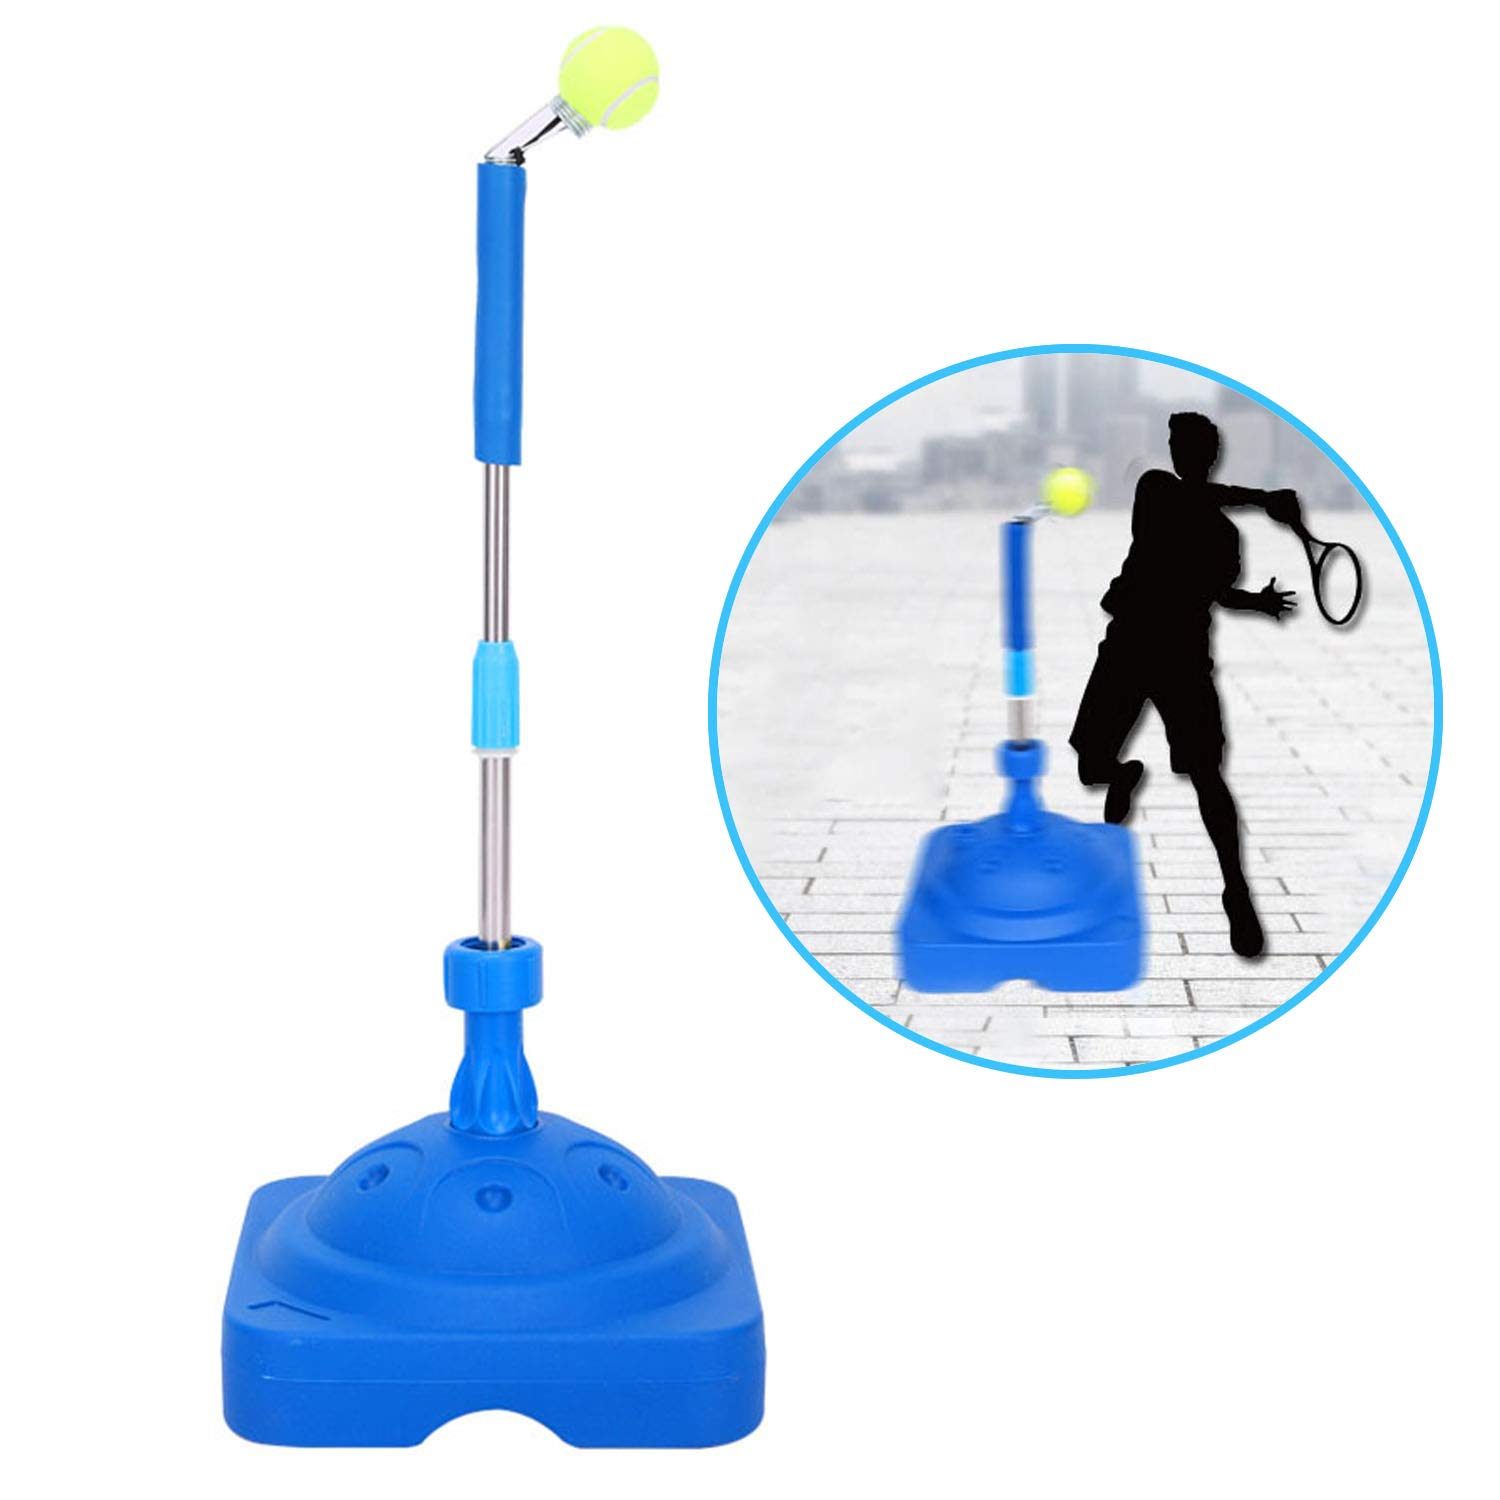 Fantaxdic Tennis Trainer Aid for Child Adult Tennis Training Partner for Beginners Holder Tennis Ball Self-Study Practice Tool Equipment Sport Exercise with 2 Balls Holder